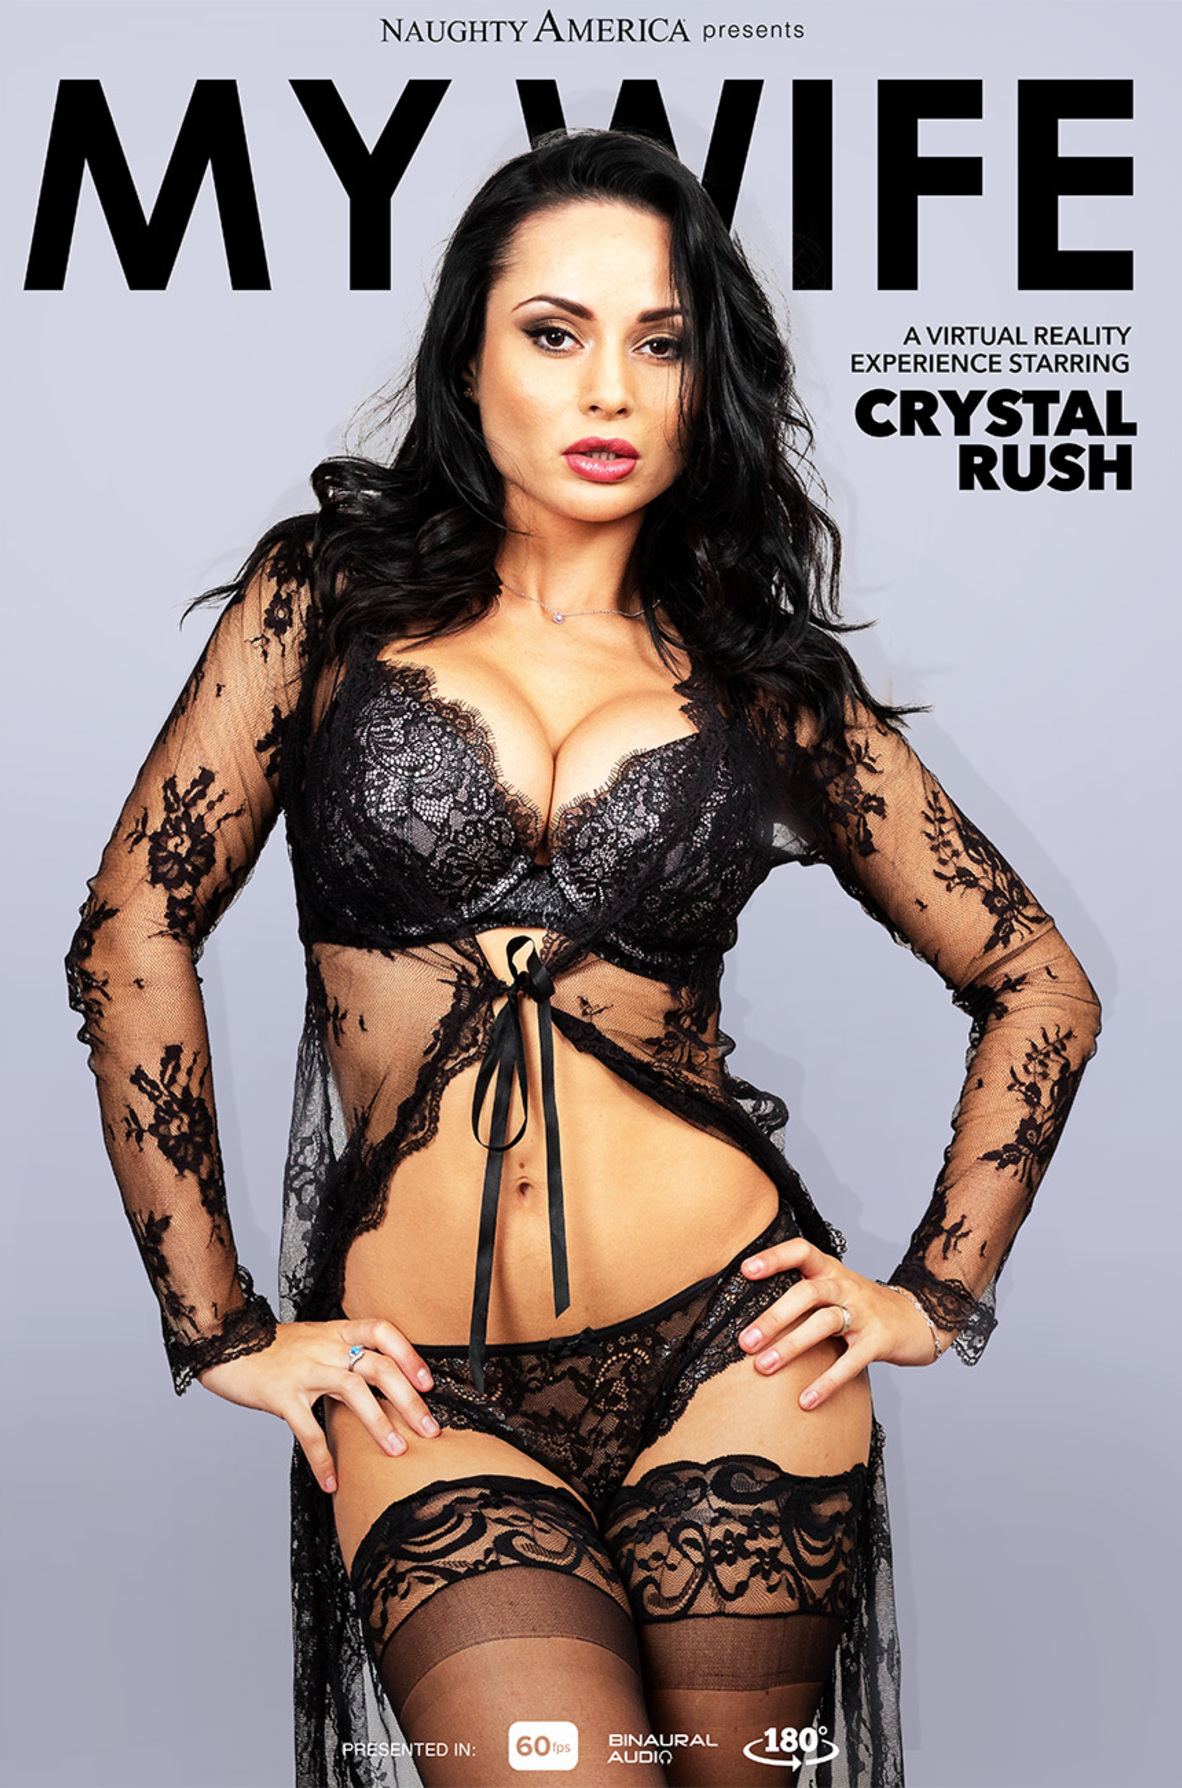 Watch Crystal Rush and Brad Sterling VR video in Naughty America